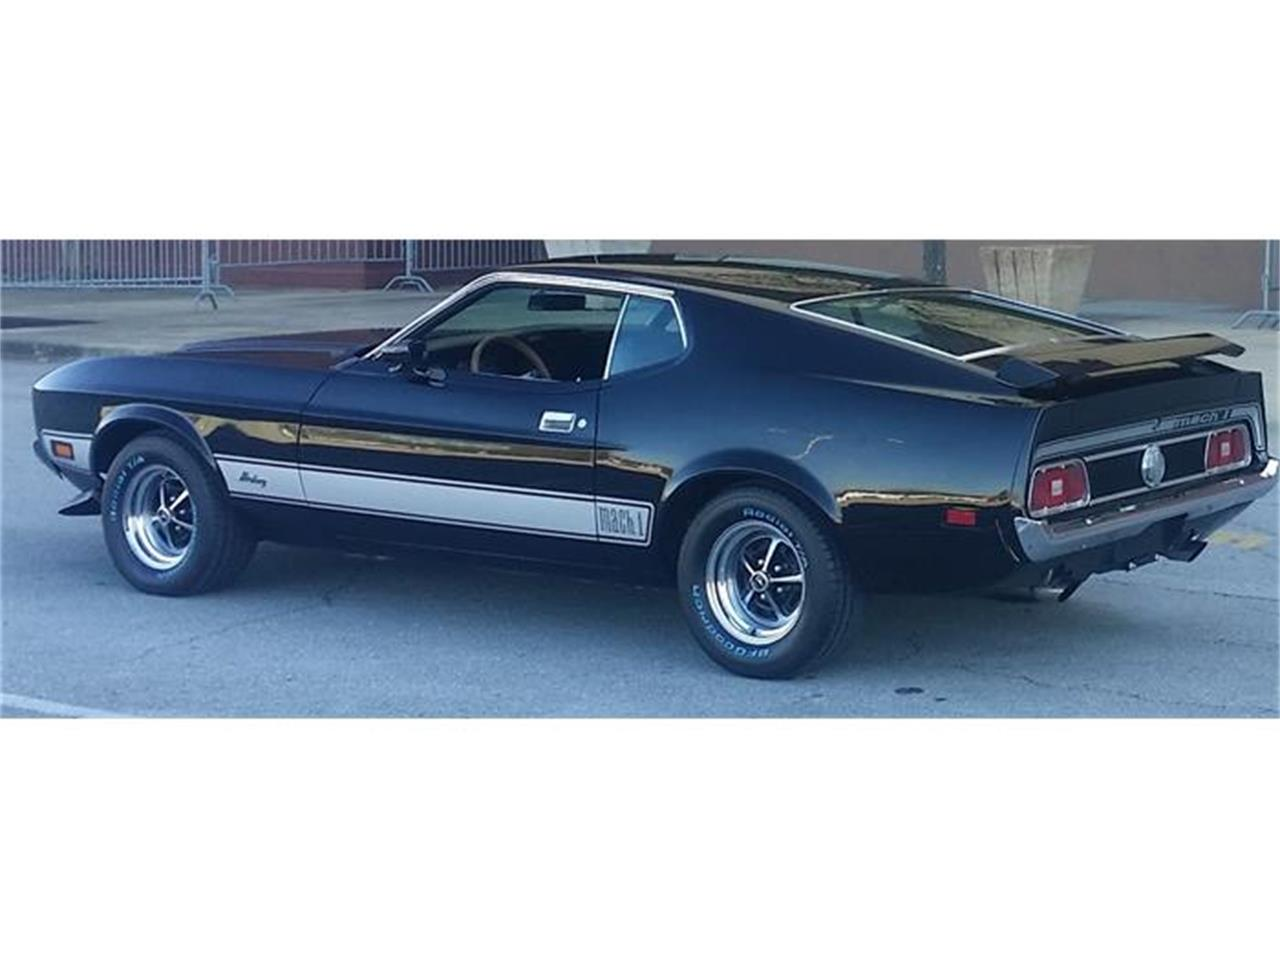 Large Picture of Classic '73 Mustang Mach 1 located in Mississippi Offered by Pappi's Garage - HI6B